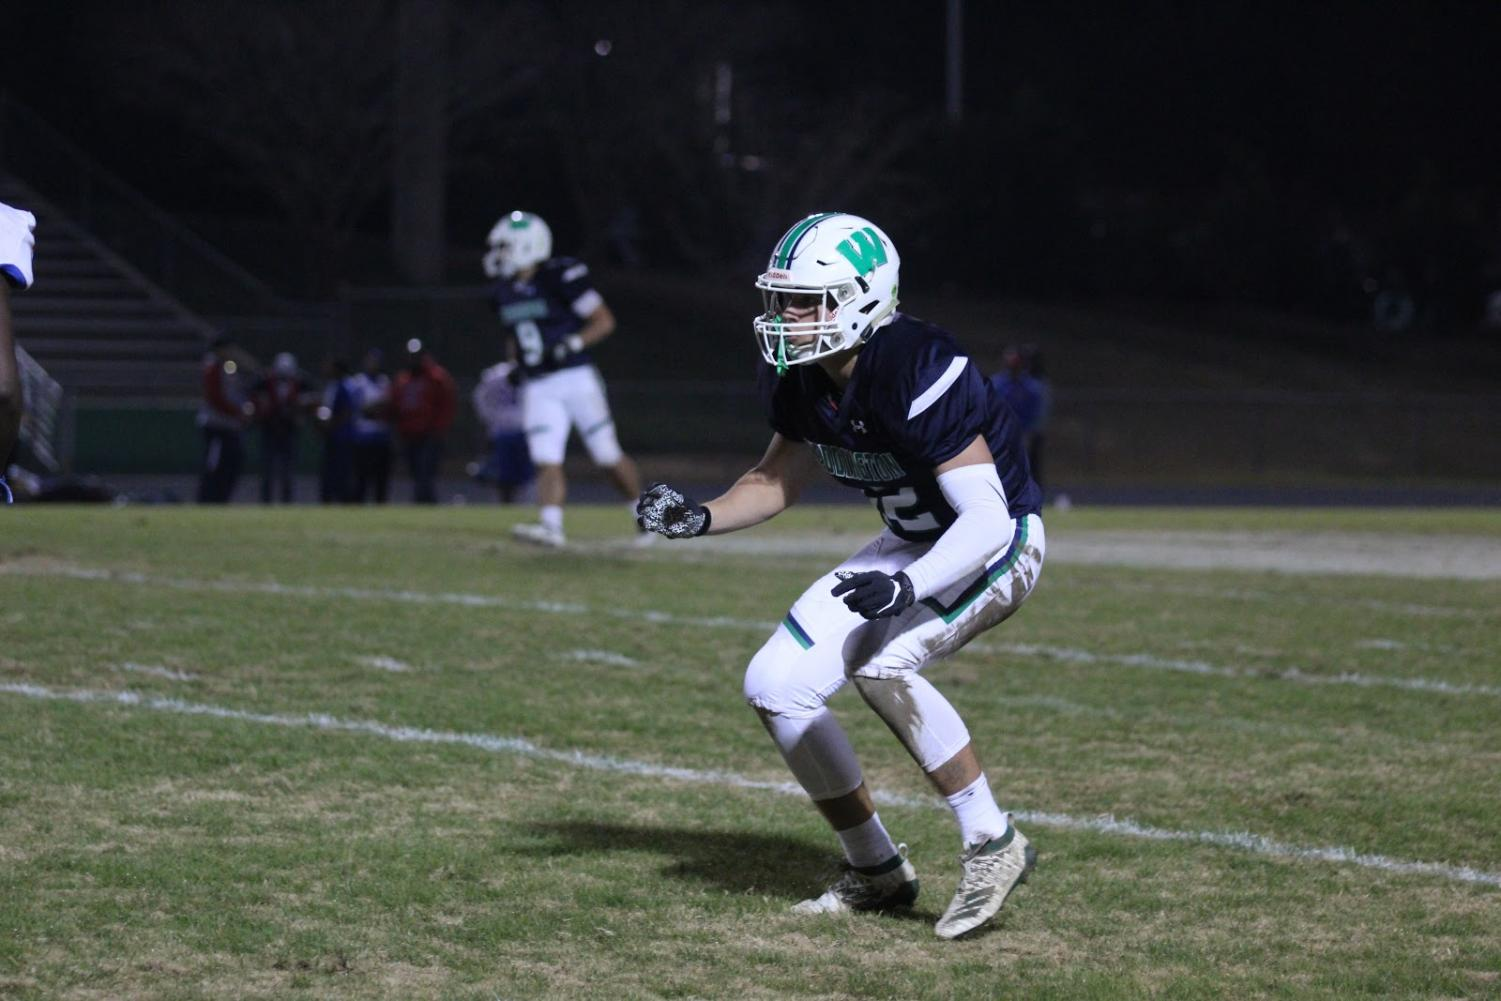 Senior Dusty Mercer stands ready while on offense against Parkland during the second round of the playoffs. His efforts along with the rest of the offensive line are what enabled Weddington to have such a stellar season.